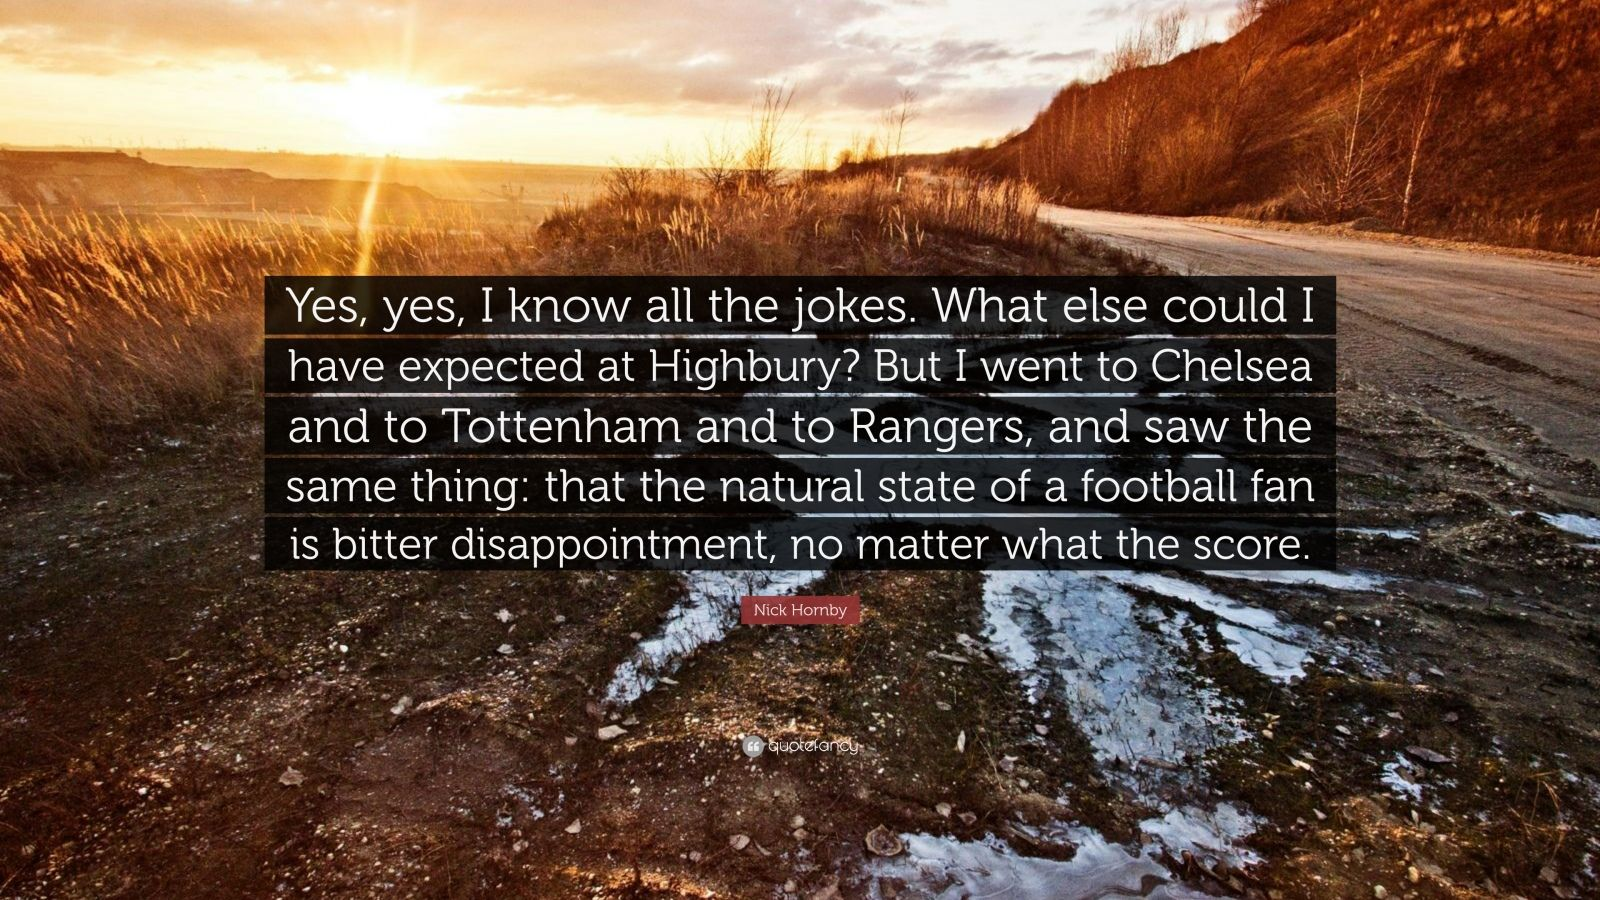 "Nick Hornby Quote: ""Yes, yes, I know all the jokes. What else could I have expected at Highbury? But I went to Chelsea and to Tottenham and to Rangers, and saw the same thing: that the natural state of a football fan is bitter disappointment, no matter what the score."""